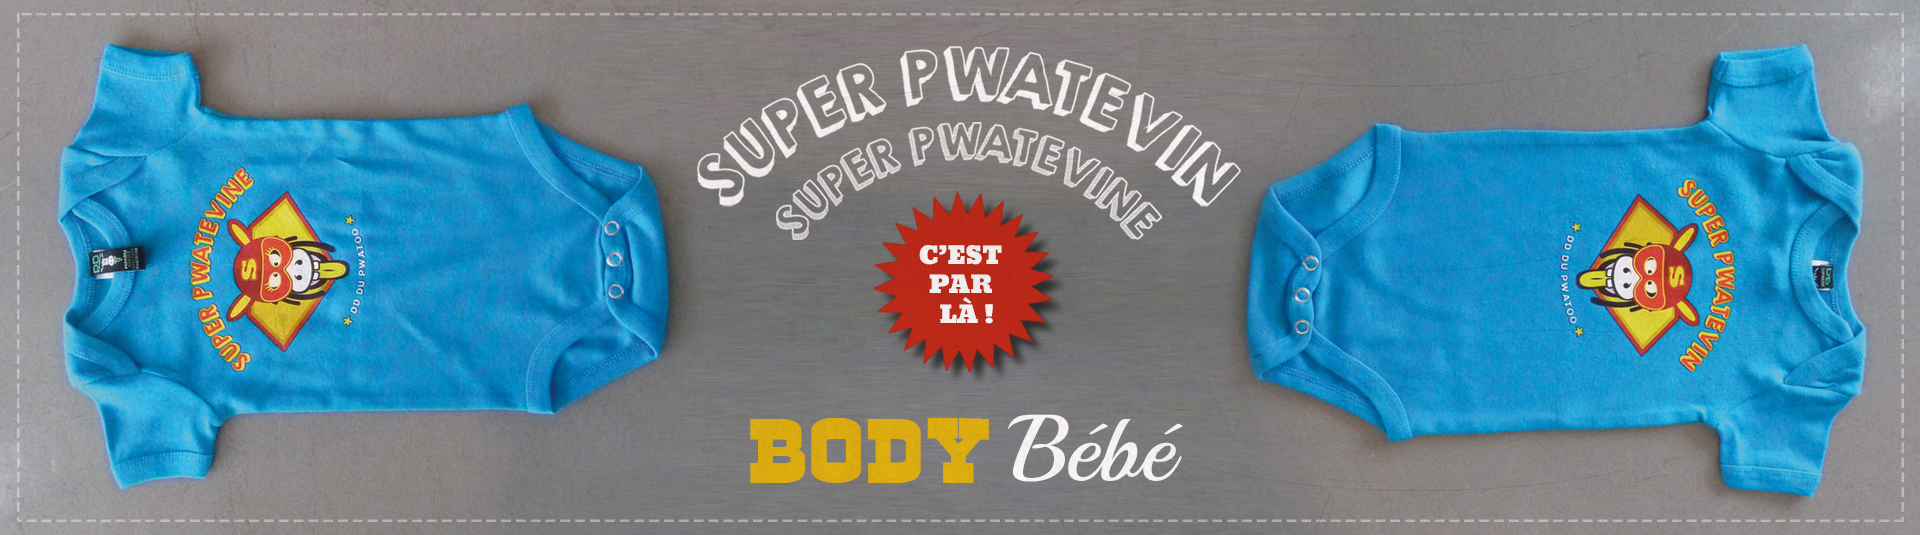 slyder-body-superpwatevin